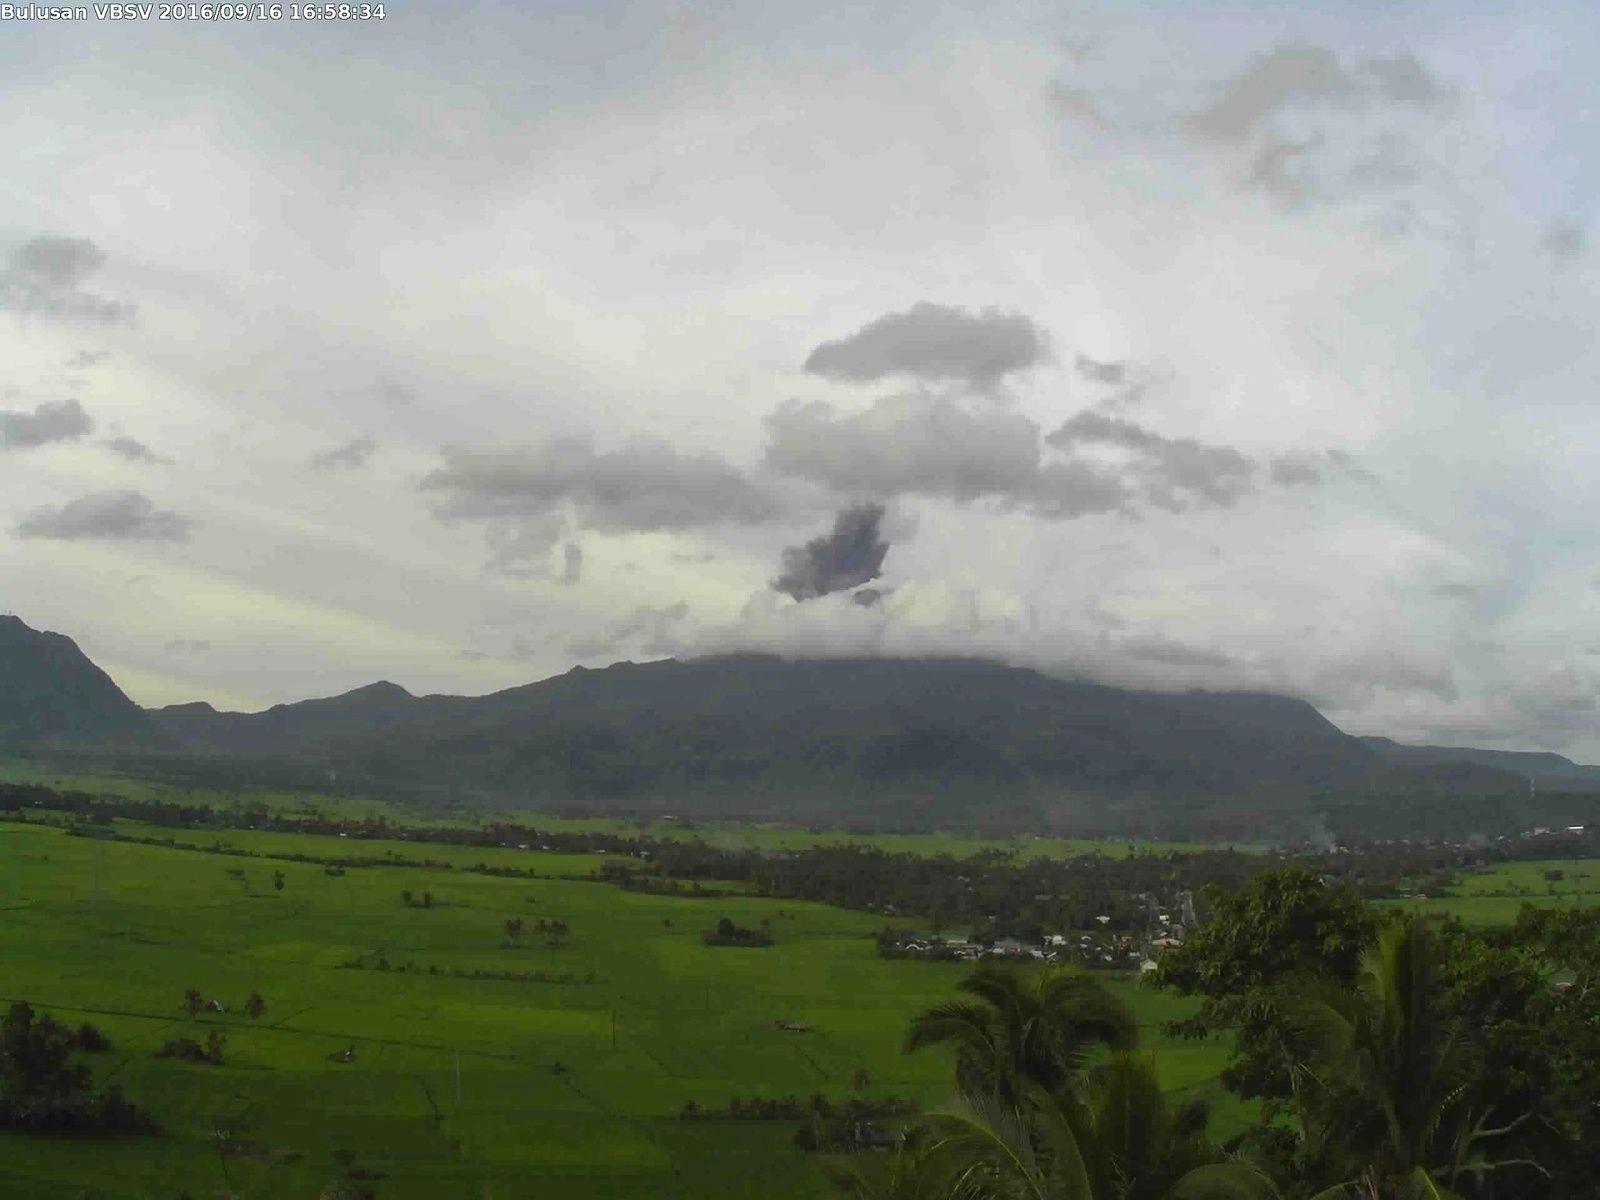 Bulusan - phreatic eruption of 09.16.2016 - photo Phivolcs- Dost